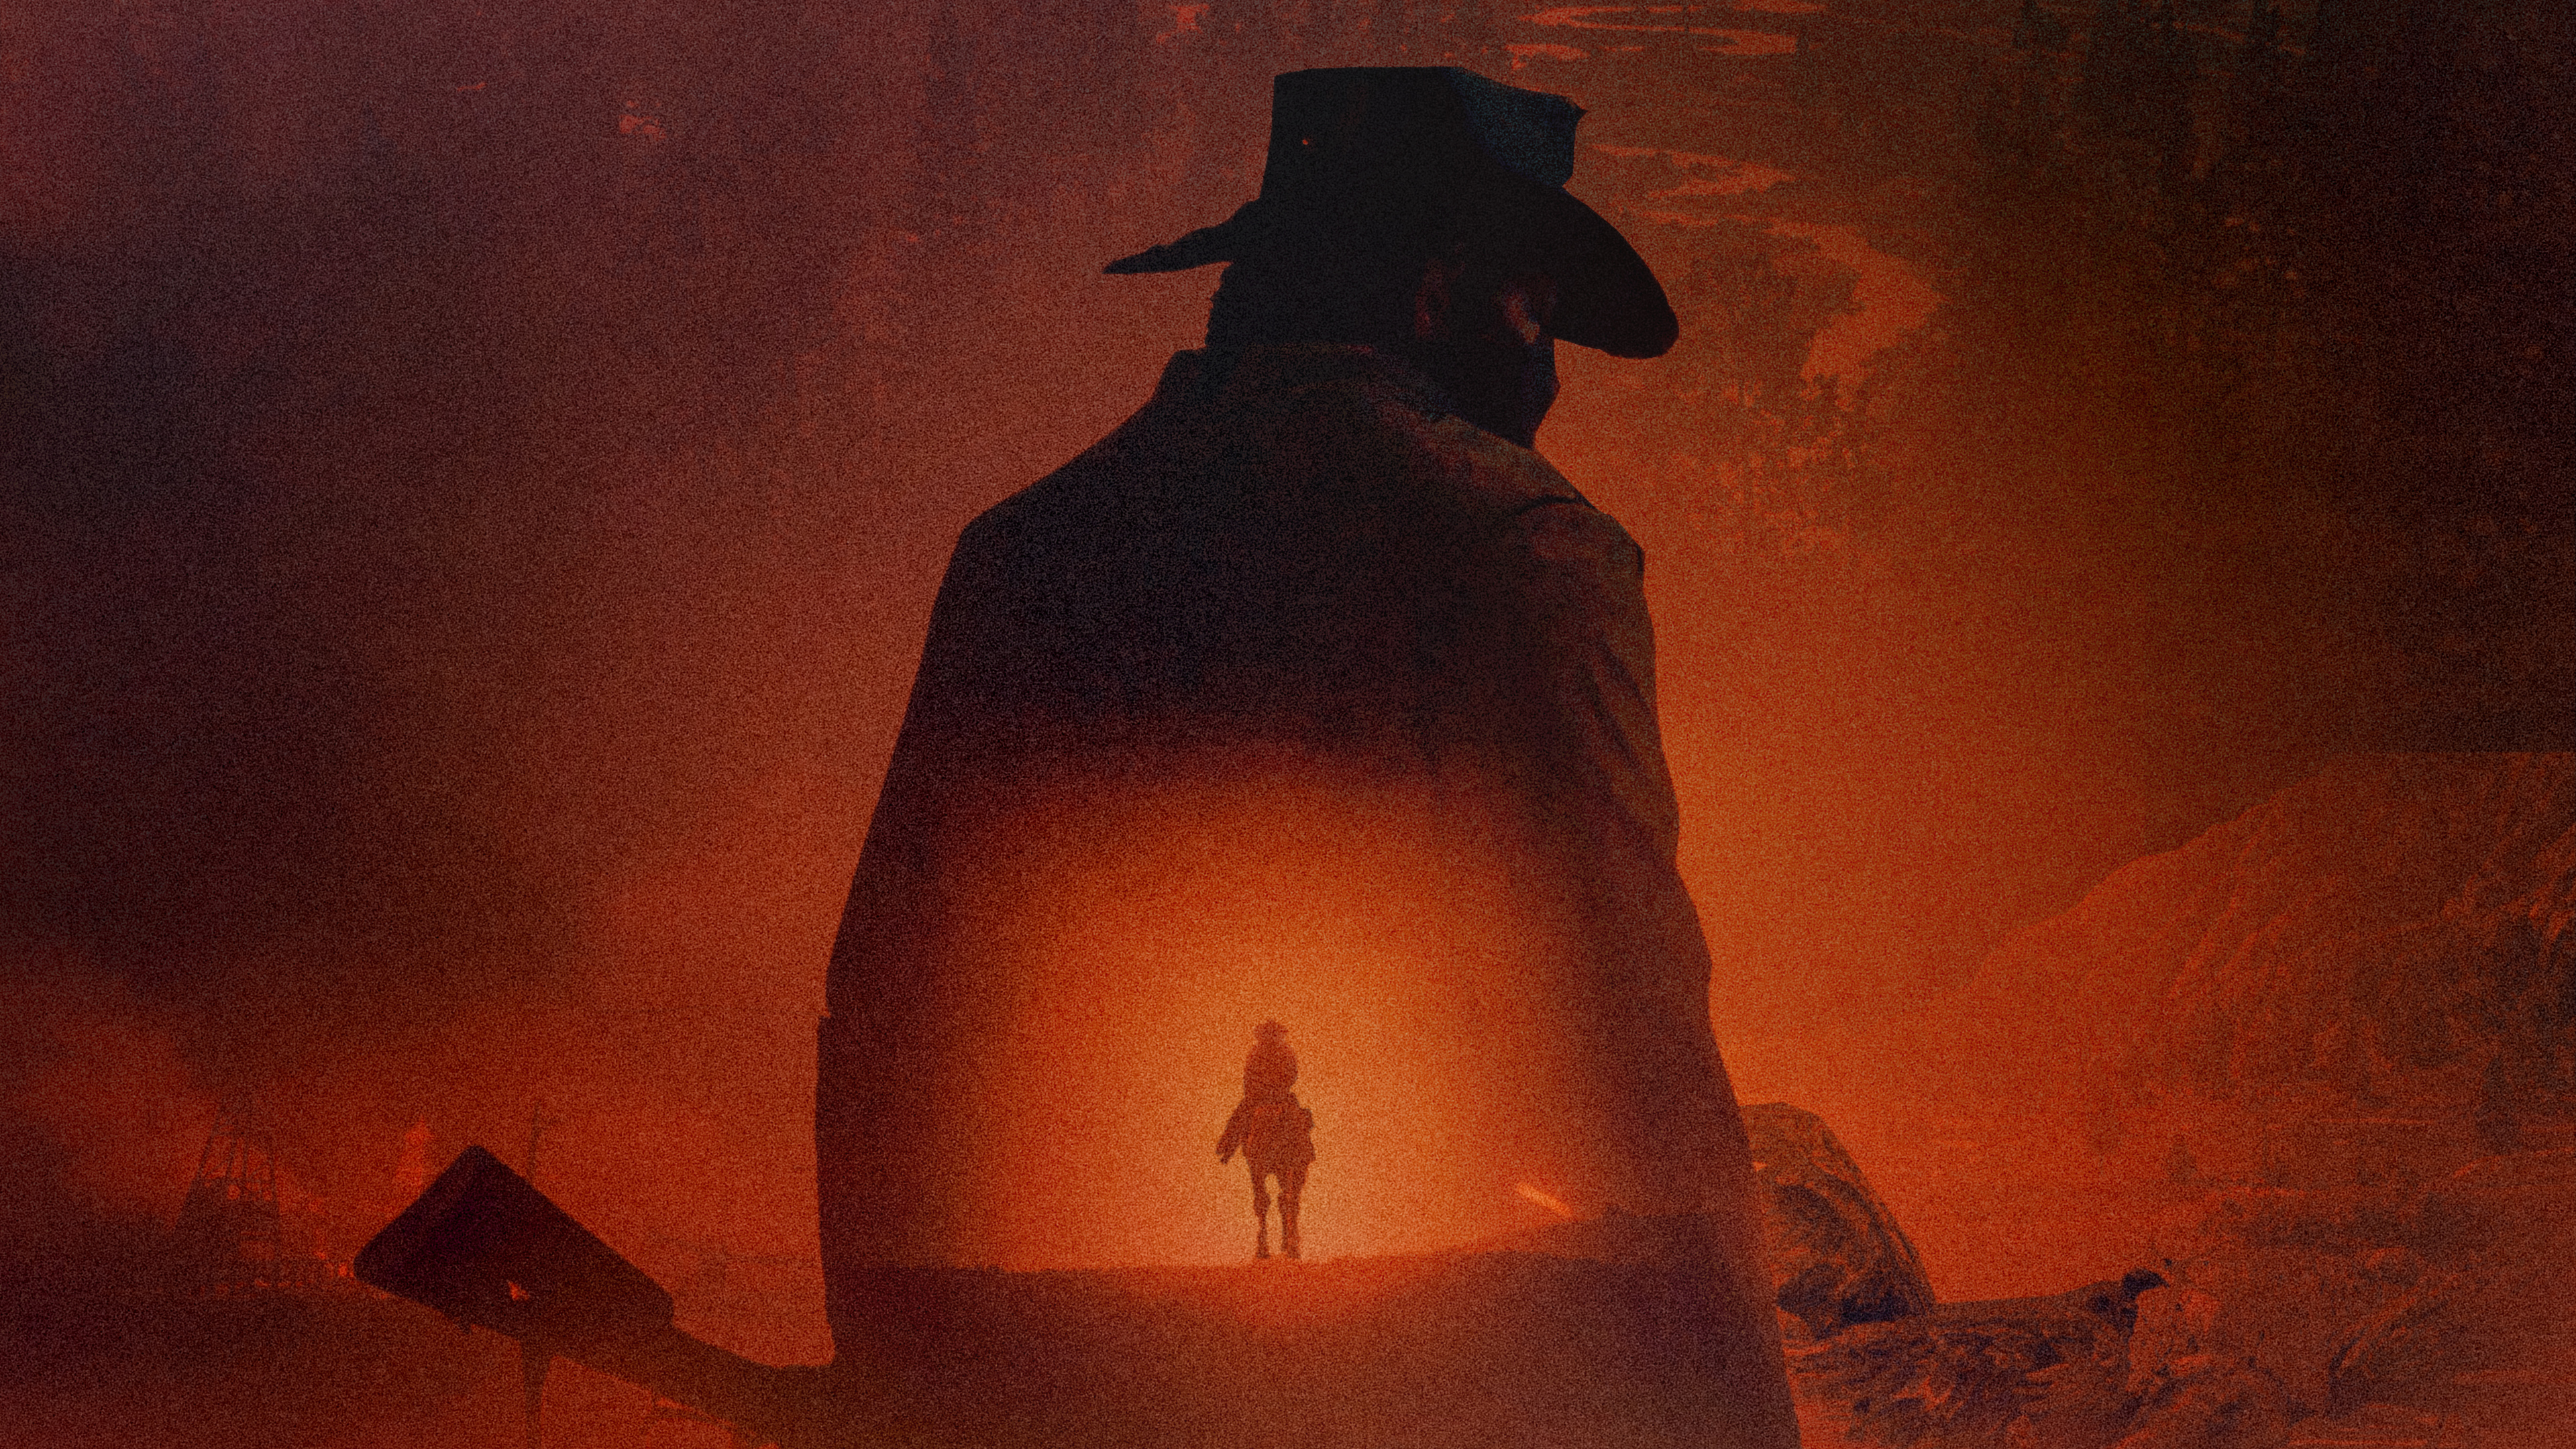 red dead redemption 2 poster key art 2018 1538941165 - Red Dead Redemption 2 Poster Key Art 2018 - red dead redemption 2 wallpapers, hd-wallpapers, games wallpapers, 4k-wallpapers, 2018 games wallpapers